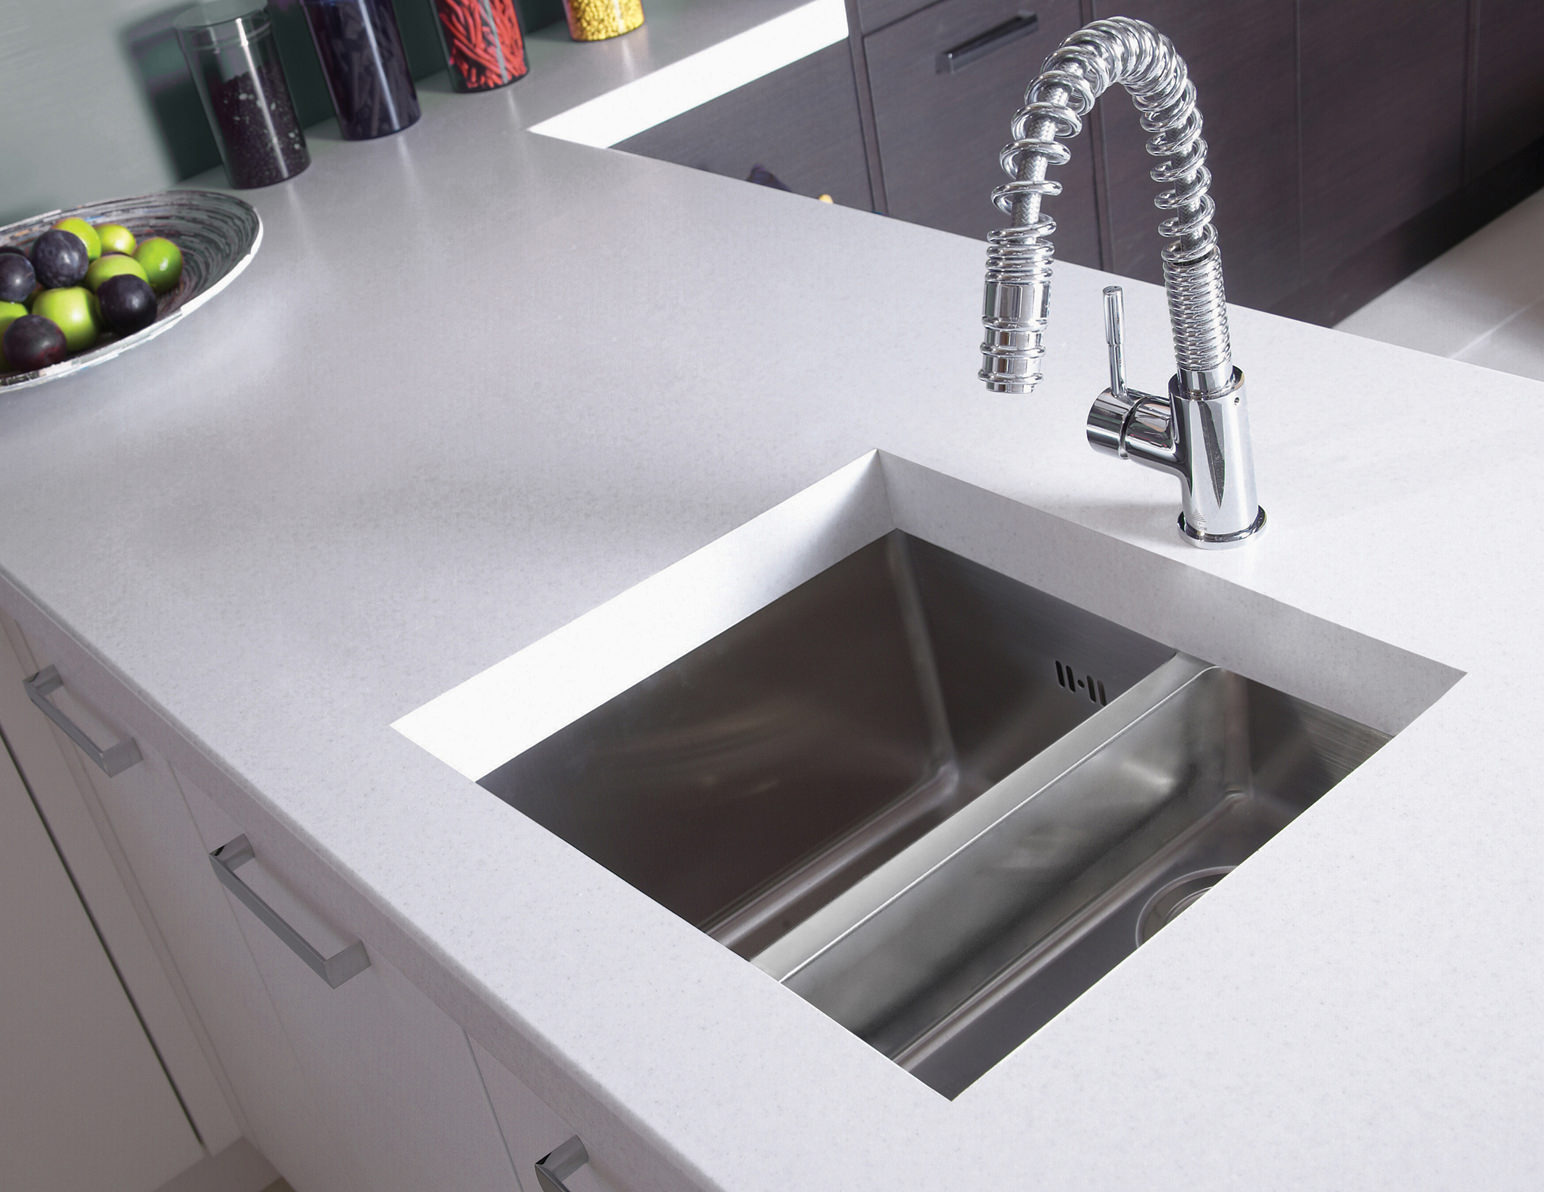 Astracast Onyx 4053 1 5 Bowl Stainless Steel Inset Sink